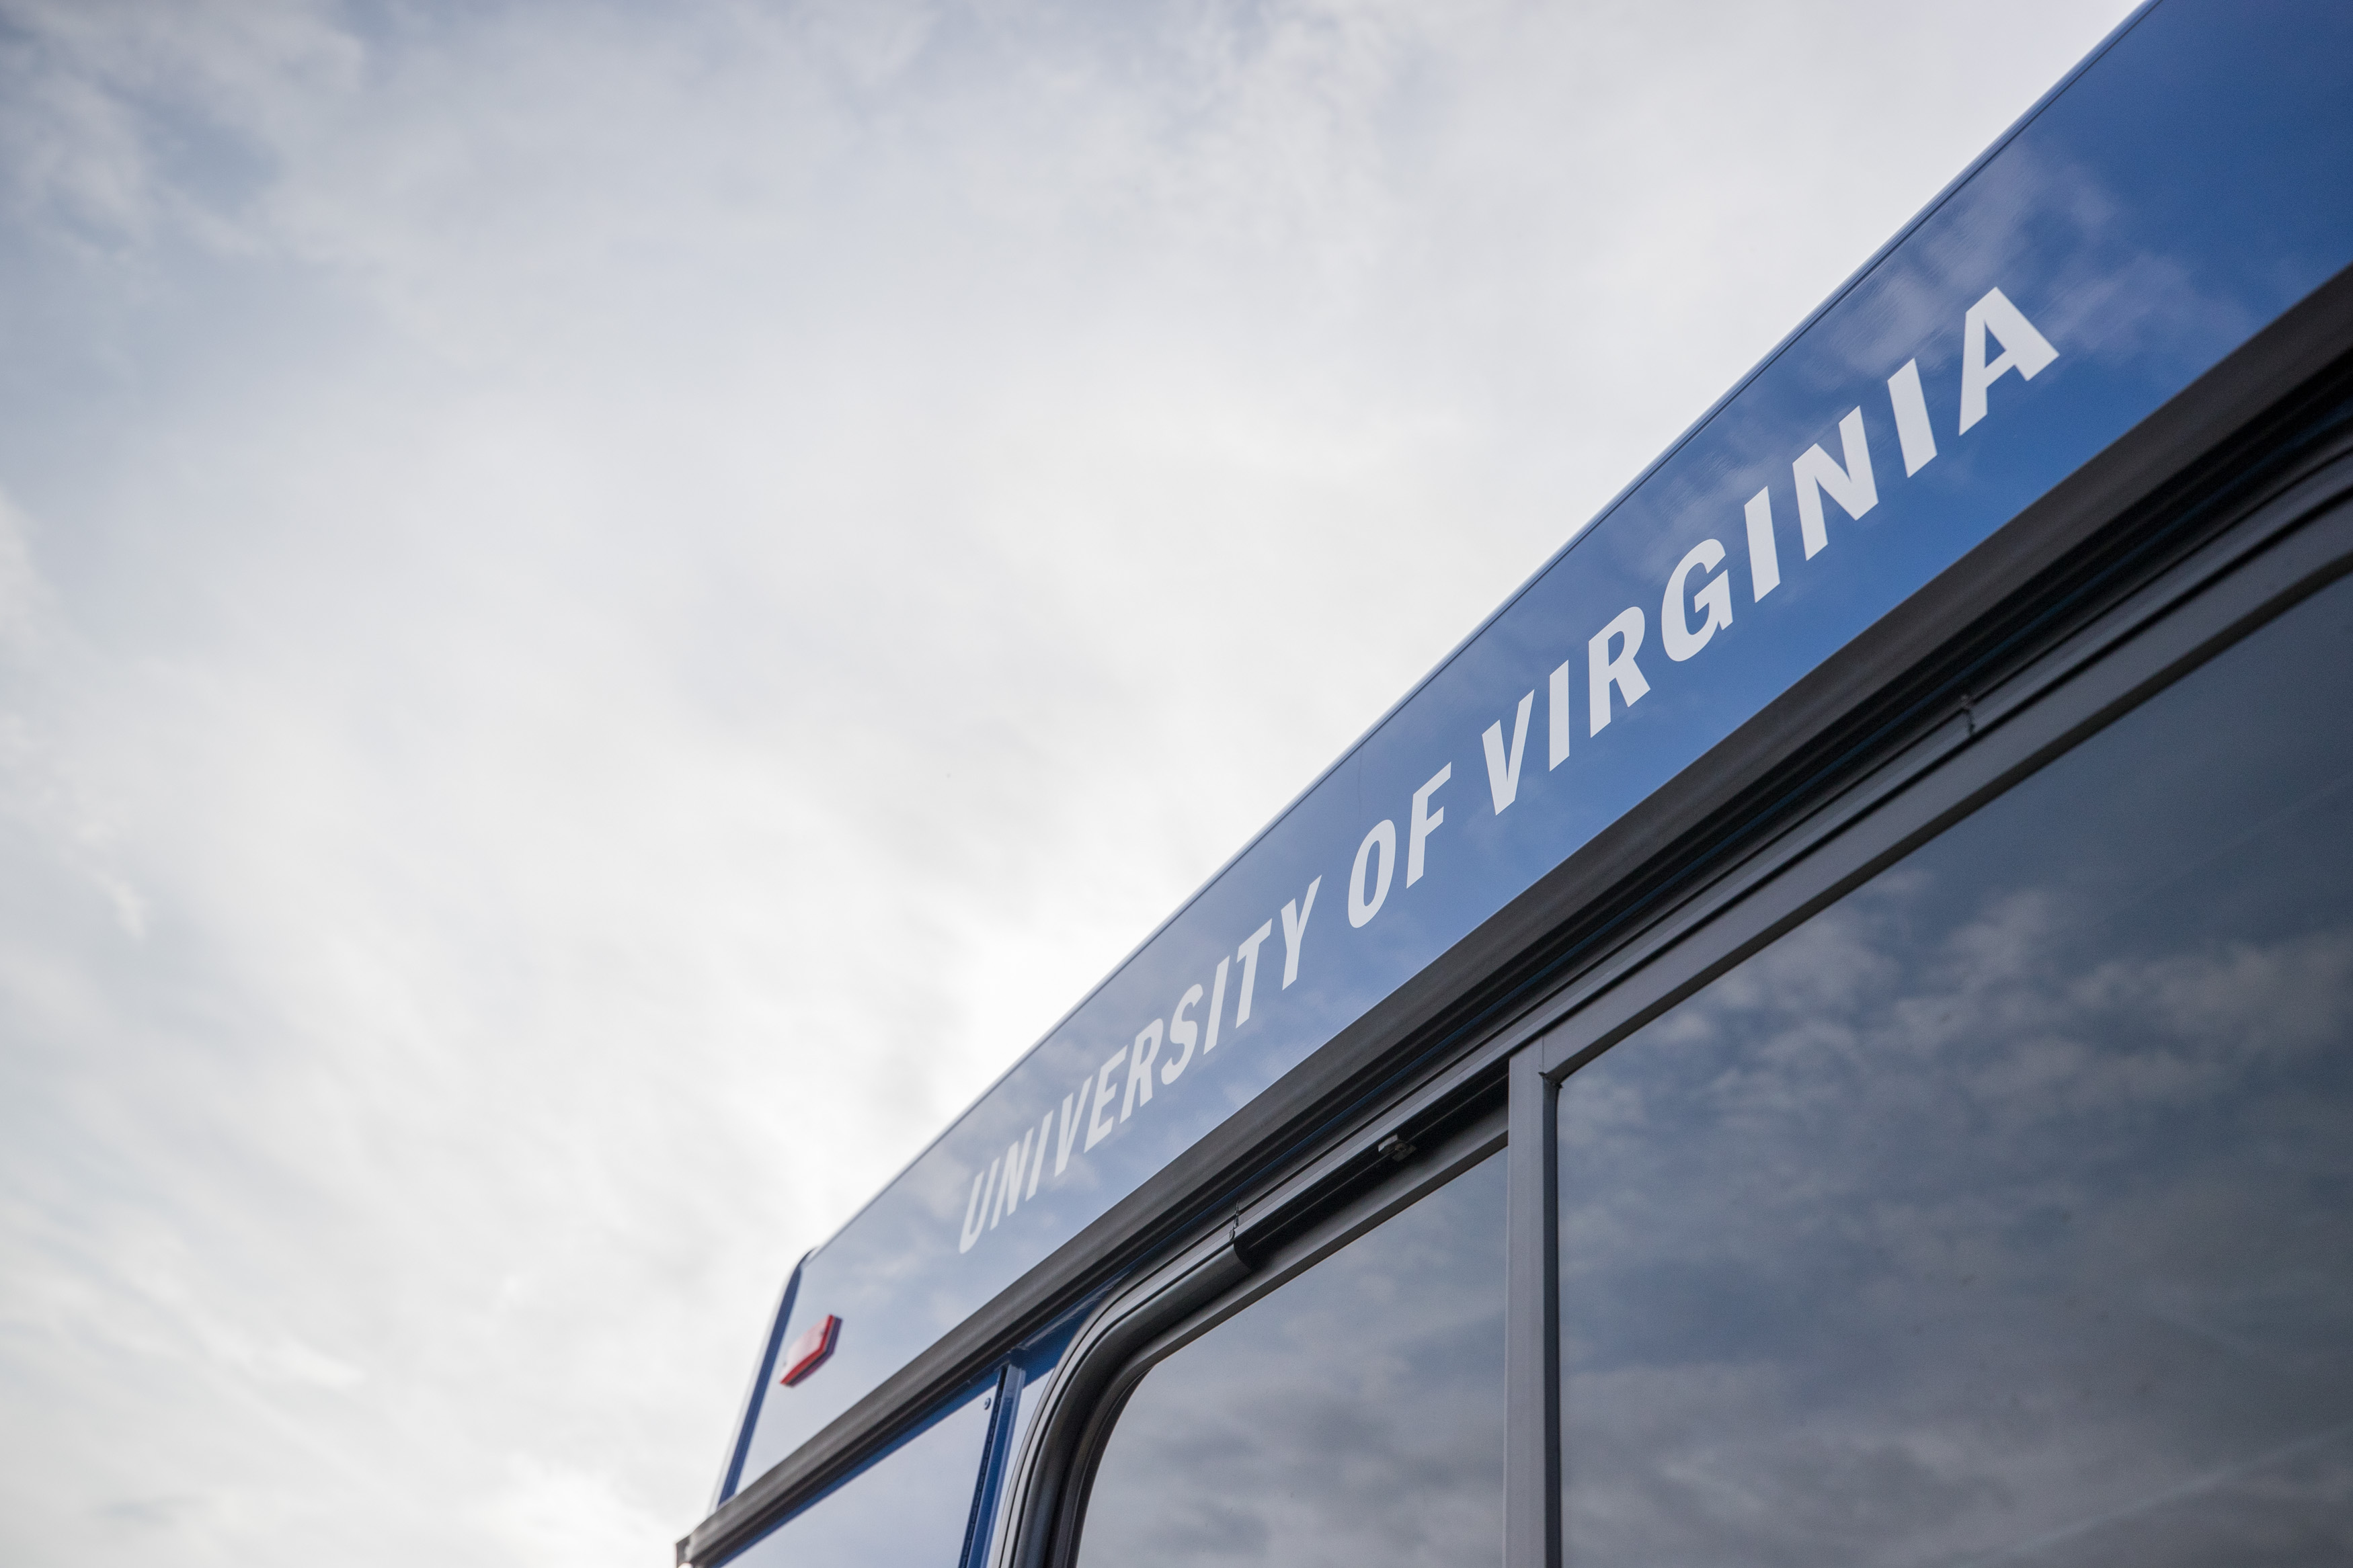 University of Virginia lettering on UTS bus